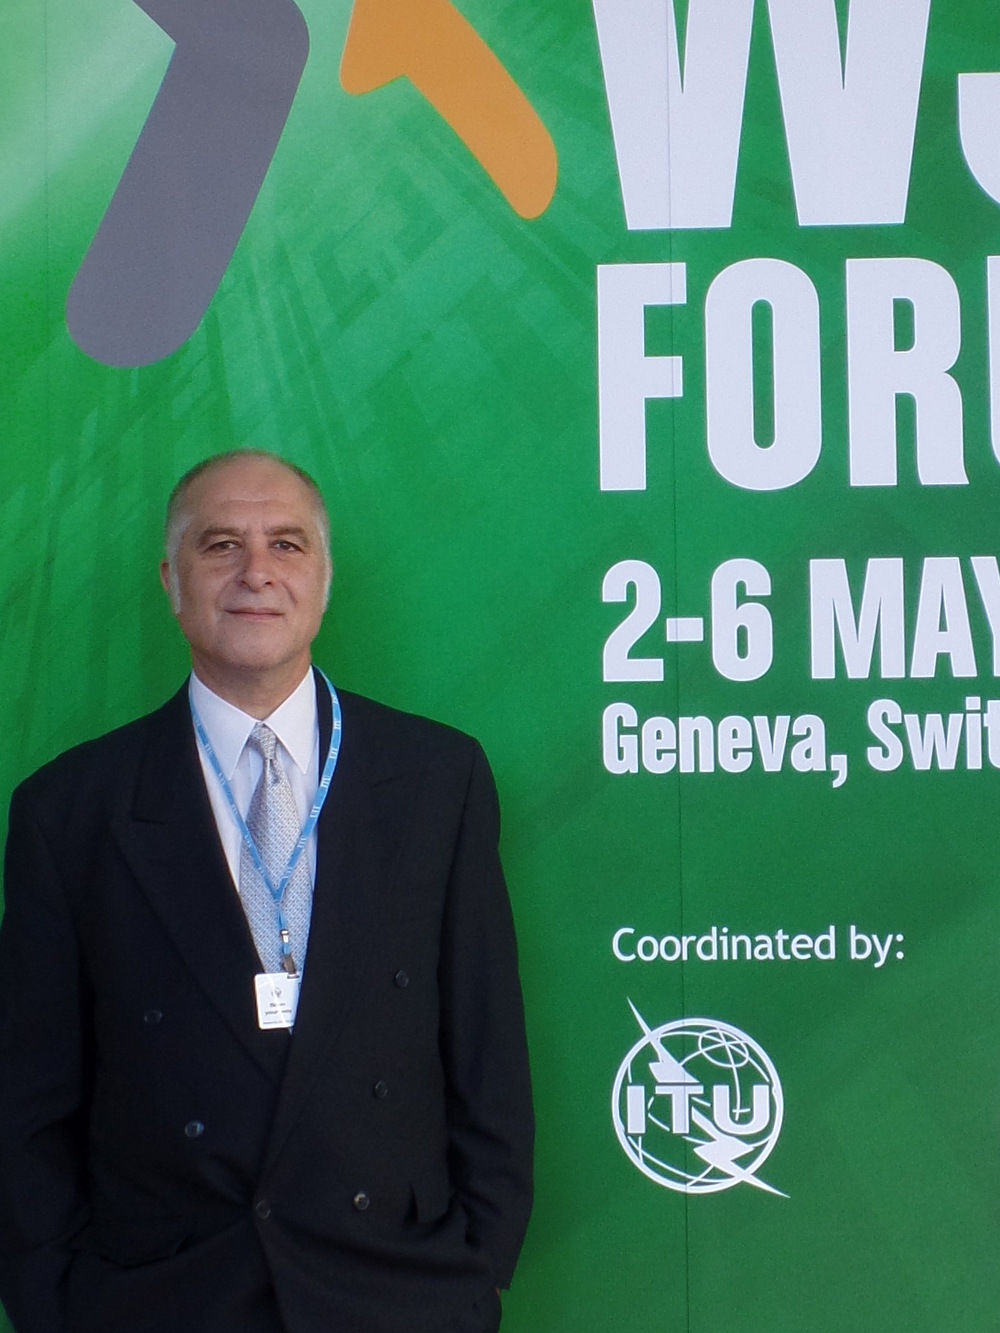 MG Michael at WSIS 2016